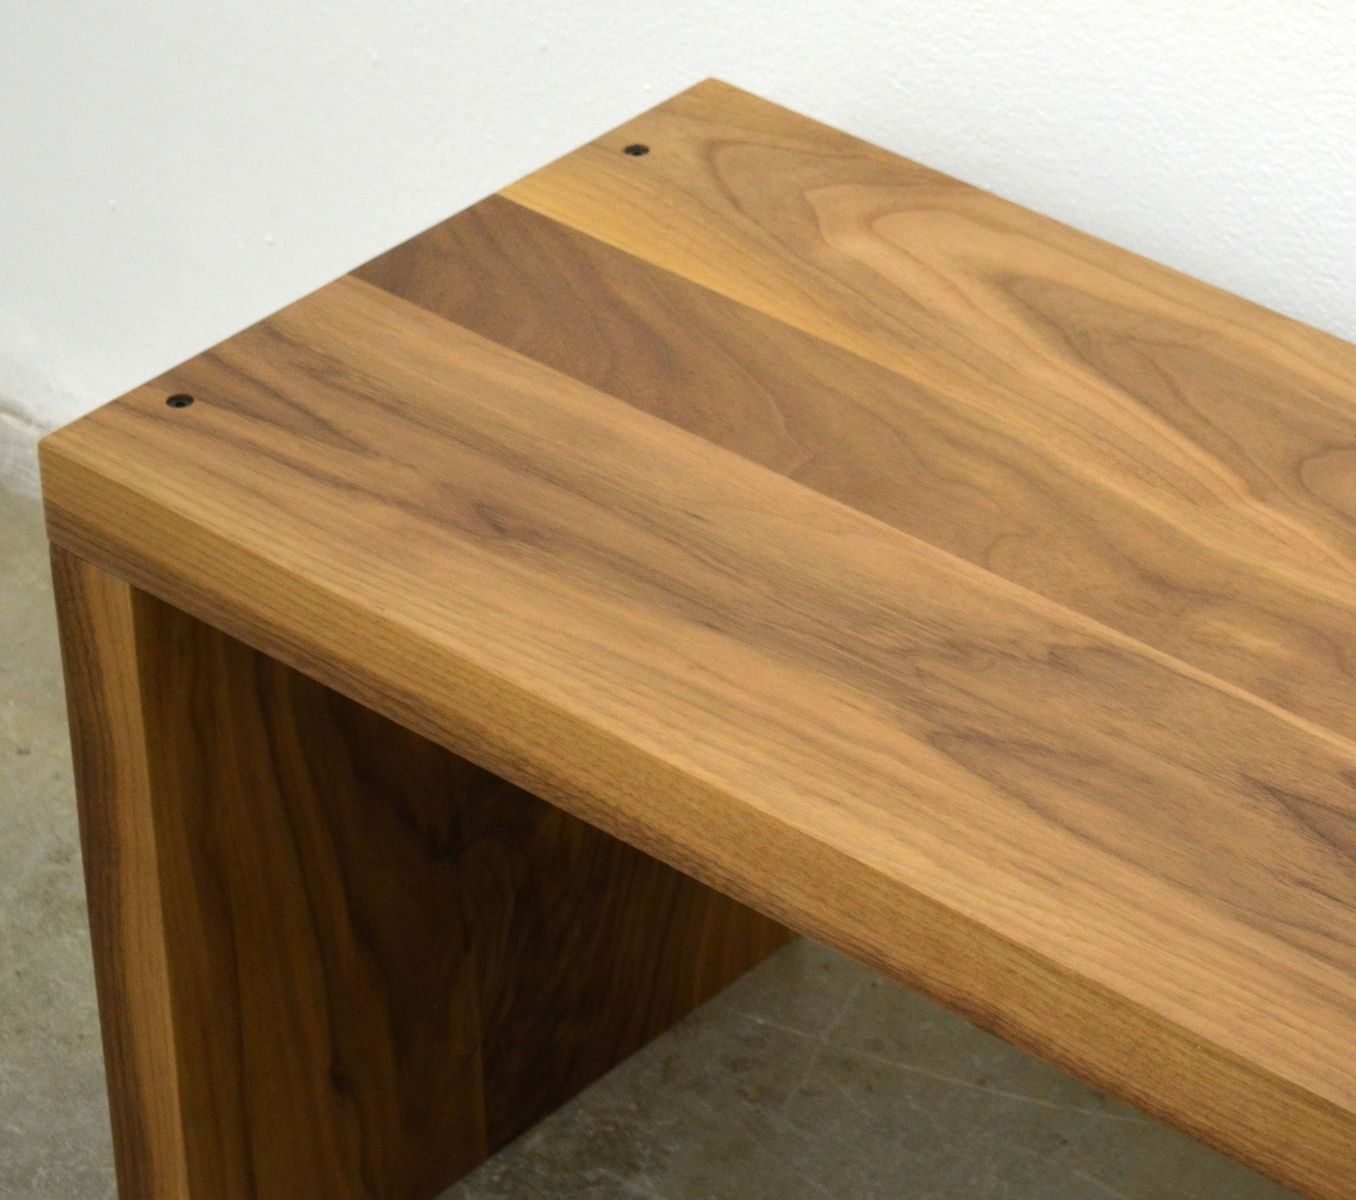 Custom made modern solid walnut wood bench by fabitecture for Modern wood furniture